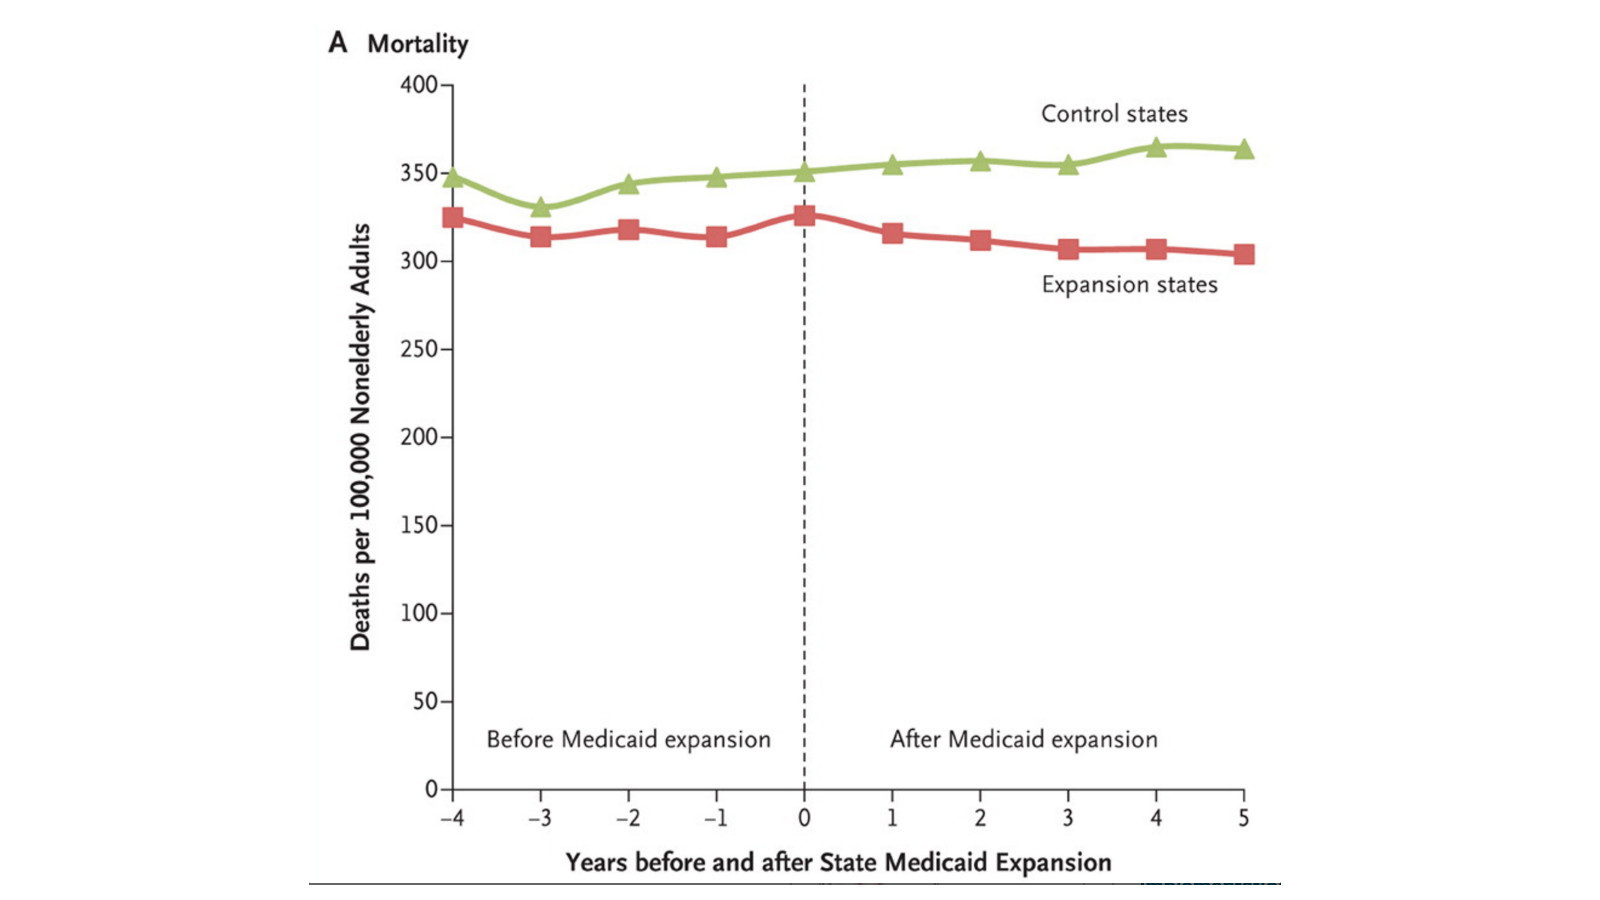 Mortality rates fell appreciably in Medicaid expansion states under the ACA, compared to states that rejected the expansion.